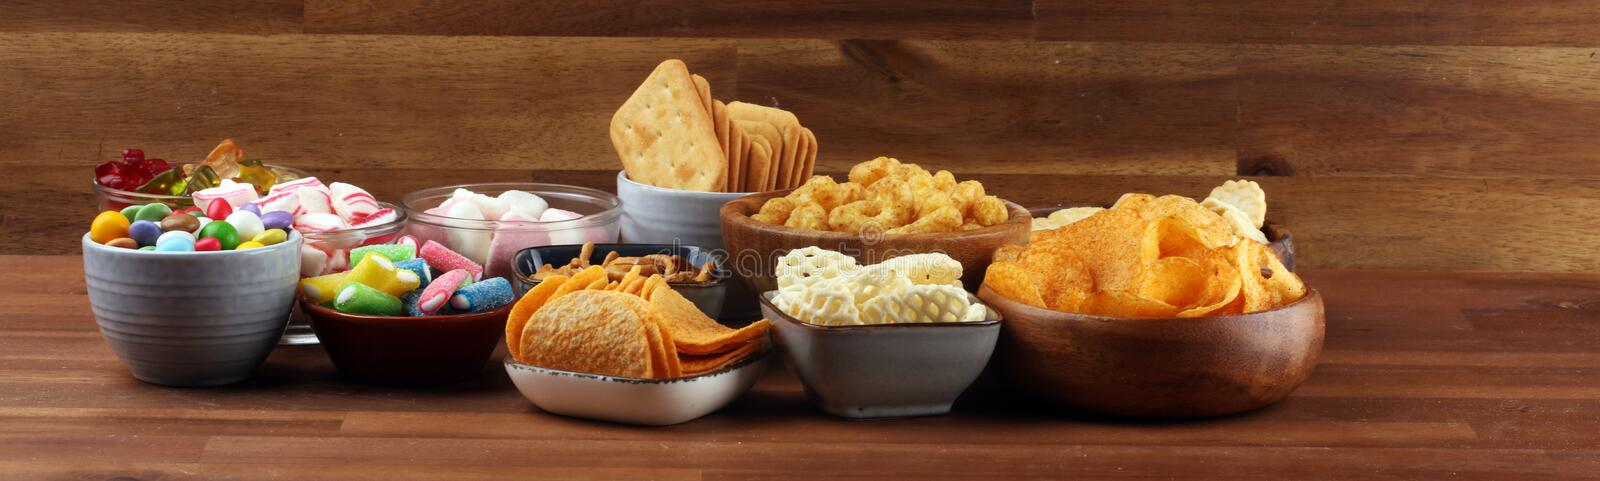 Salty snacks. Pretzels, chips, crackers and candy sweets on table stock photos